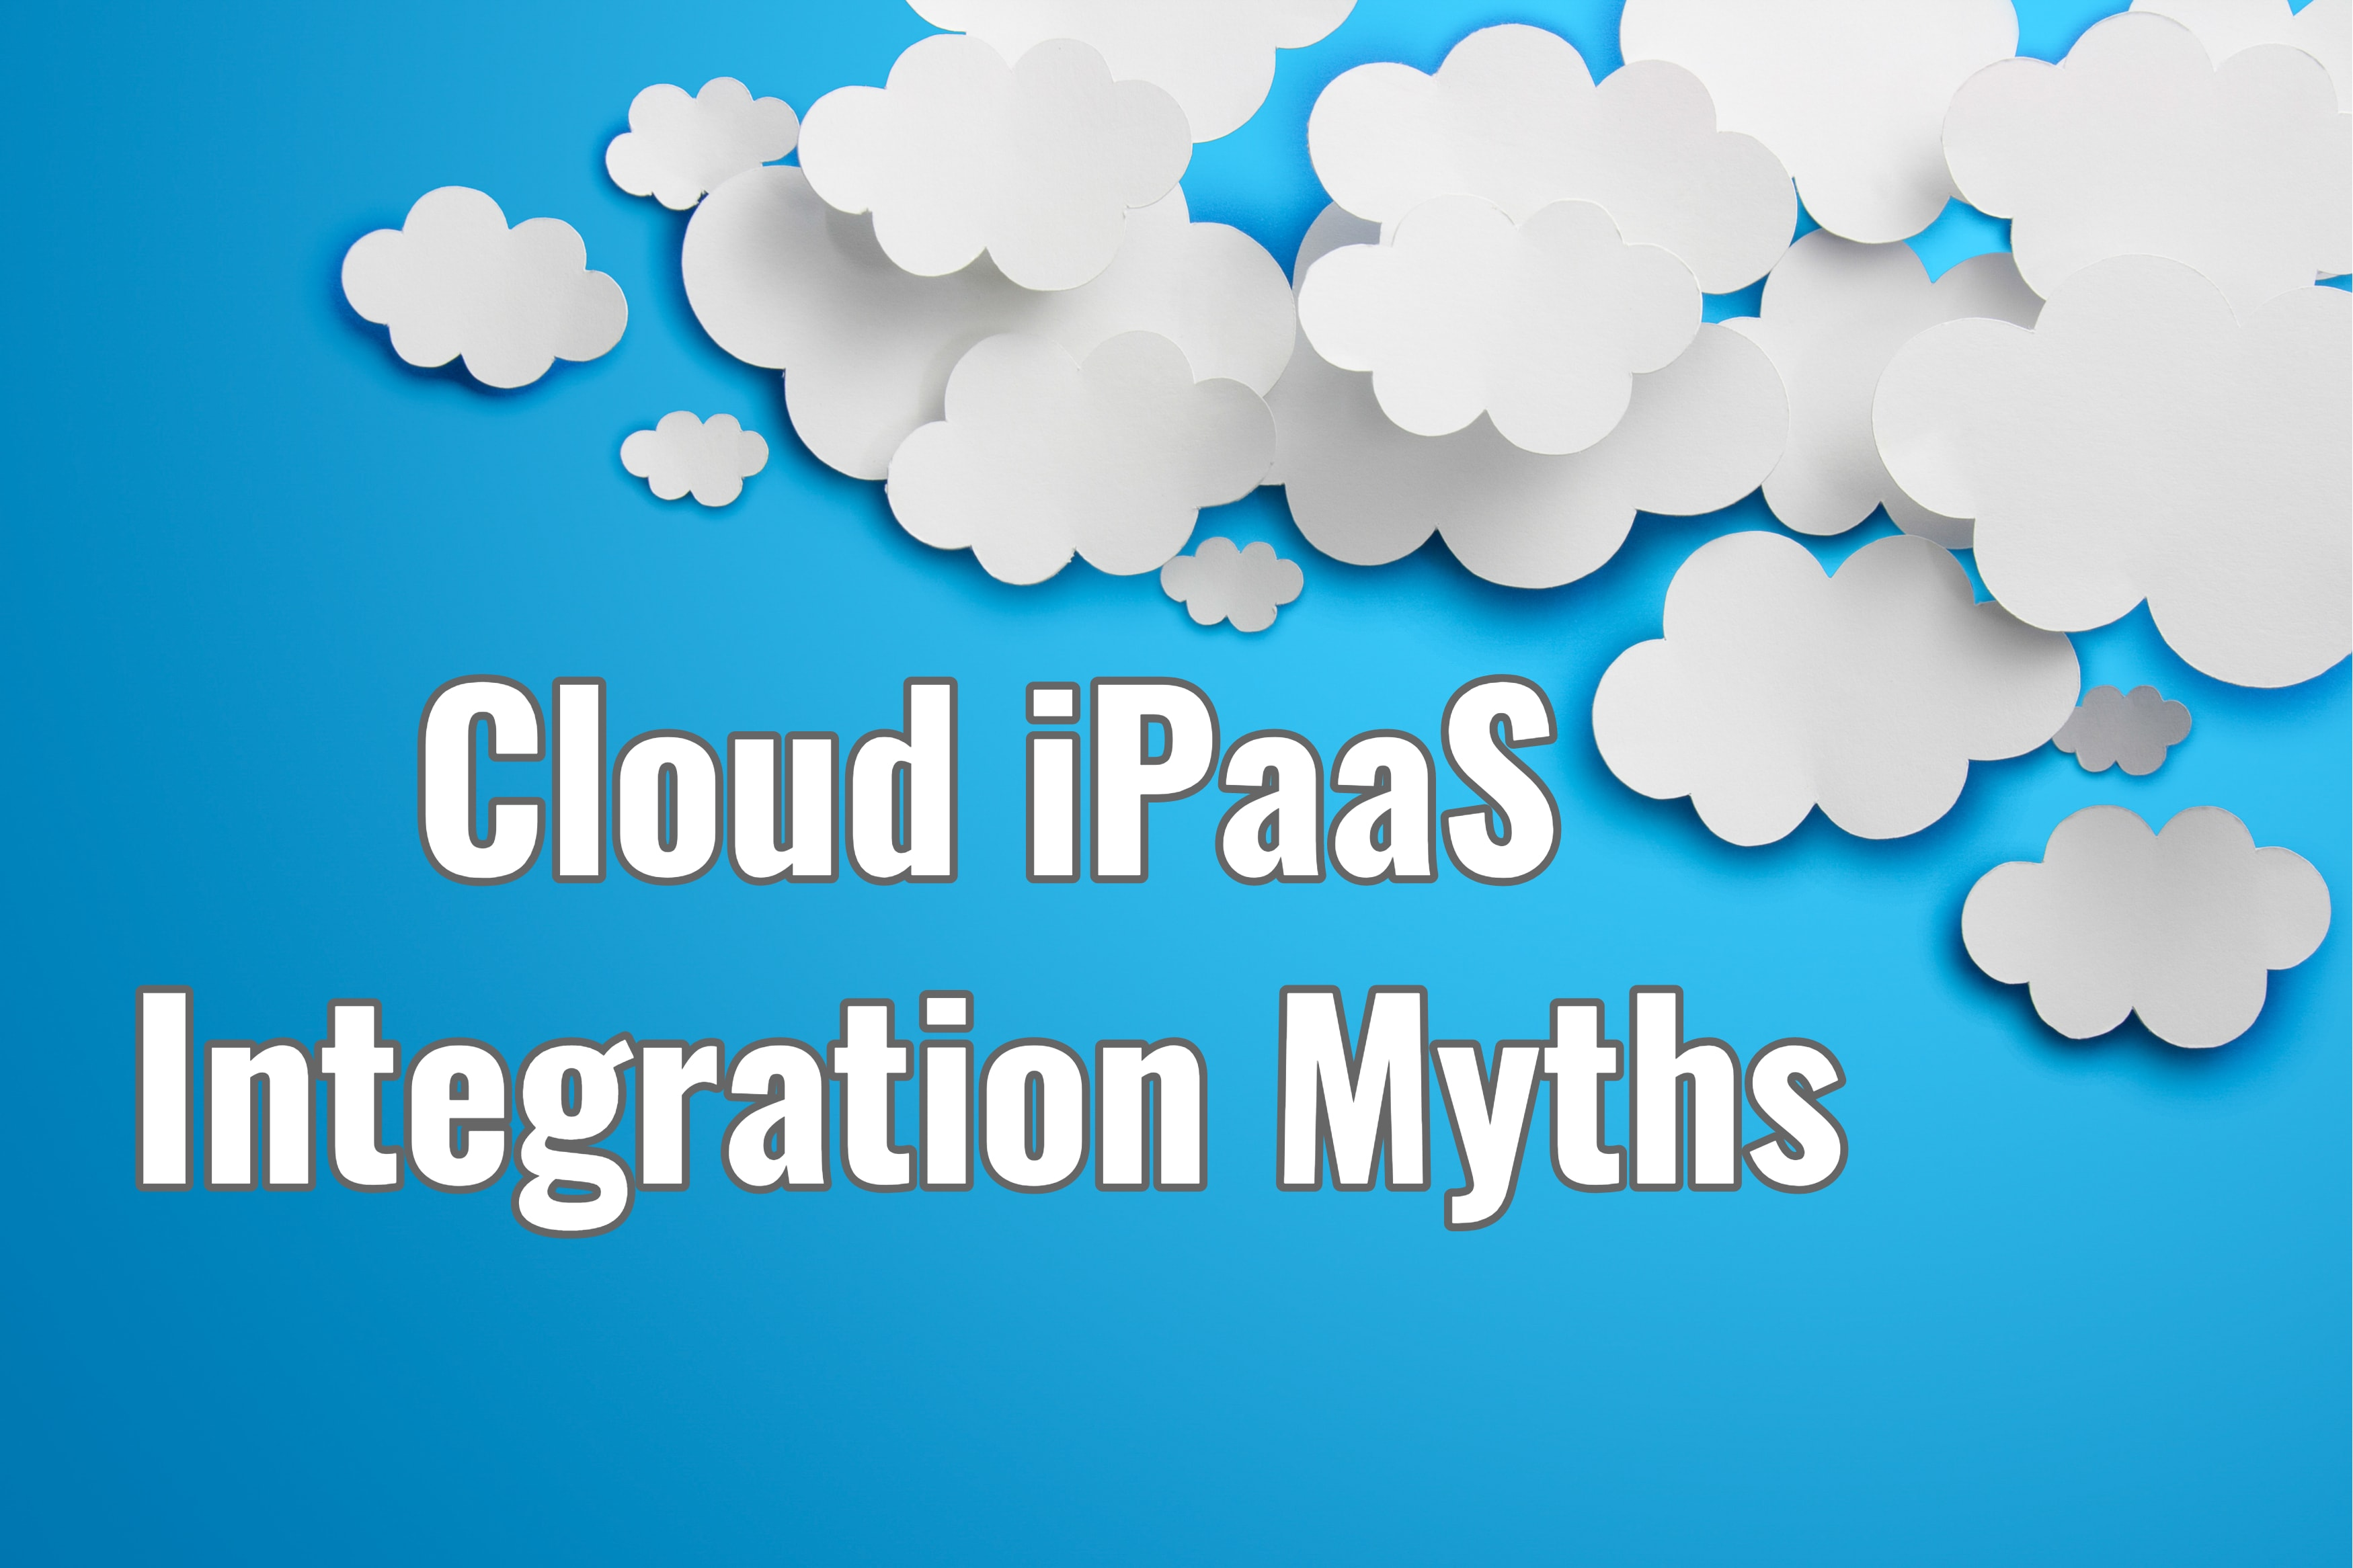 Cloud iPaaS Integration Myths That Just Aren't True